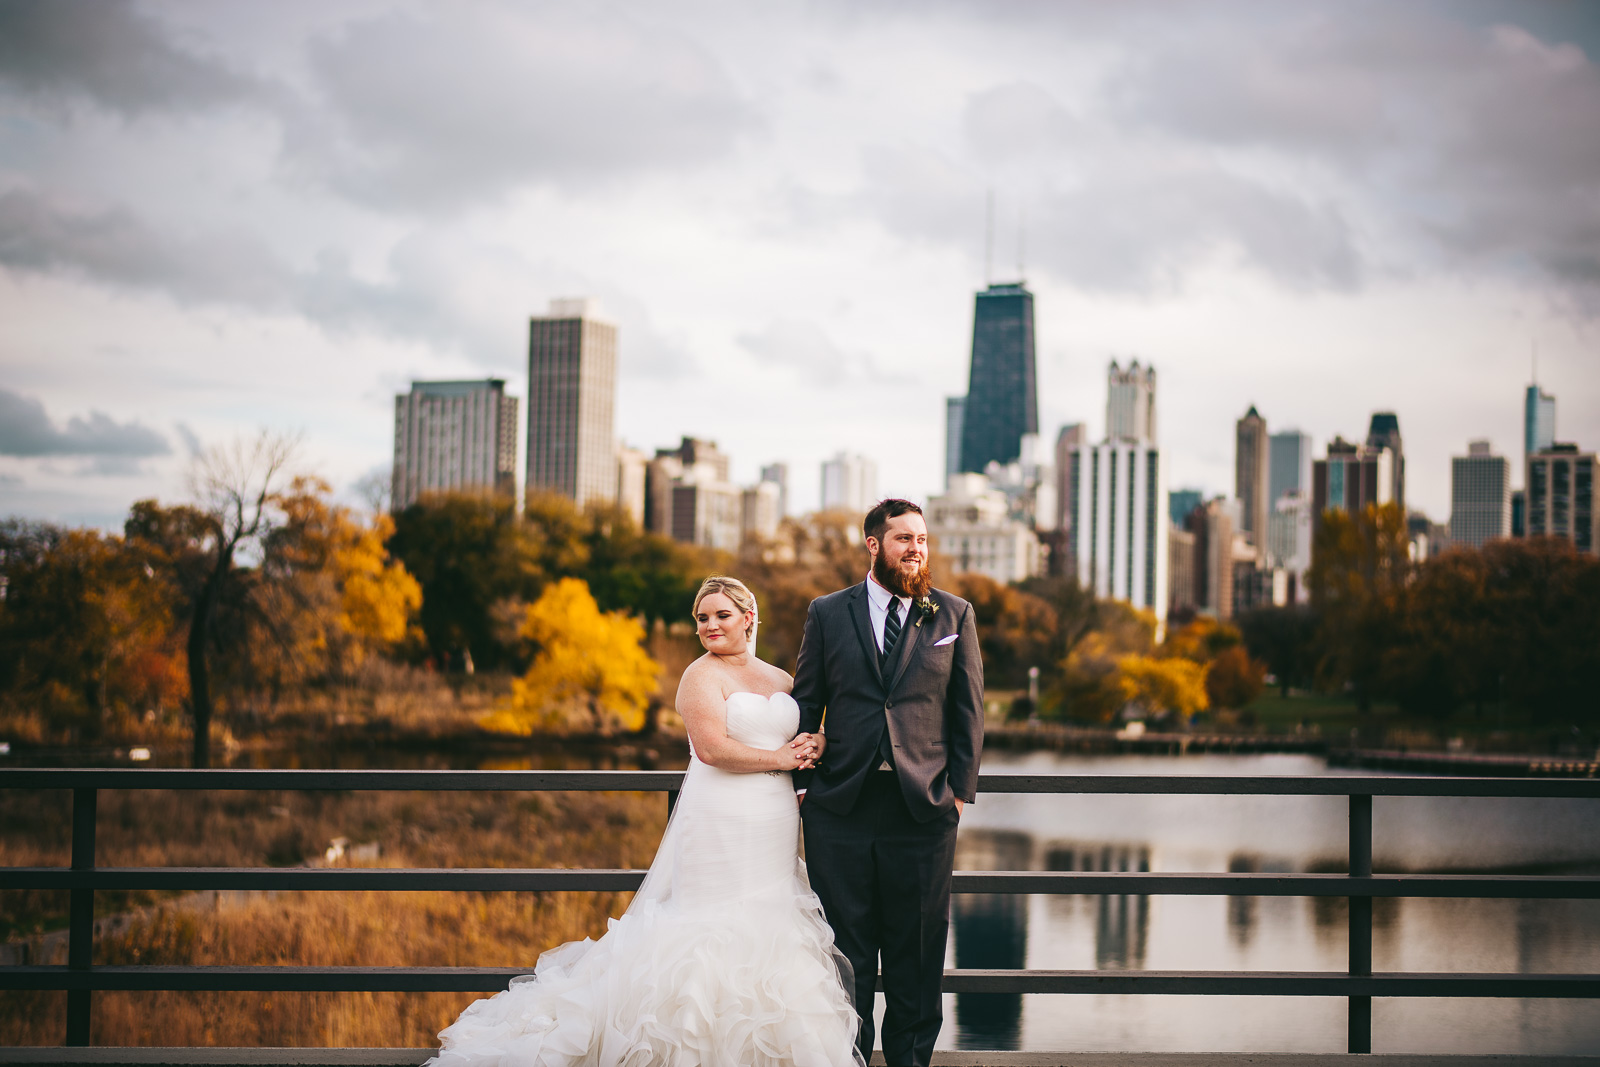 122 chicago wedding photographer best portraits during weddings review - 2018 in Review // My Favorite Chicago Wedding Photography Portraits